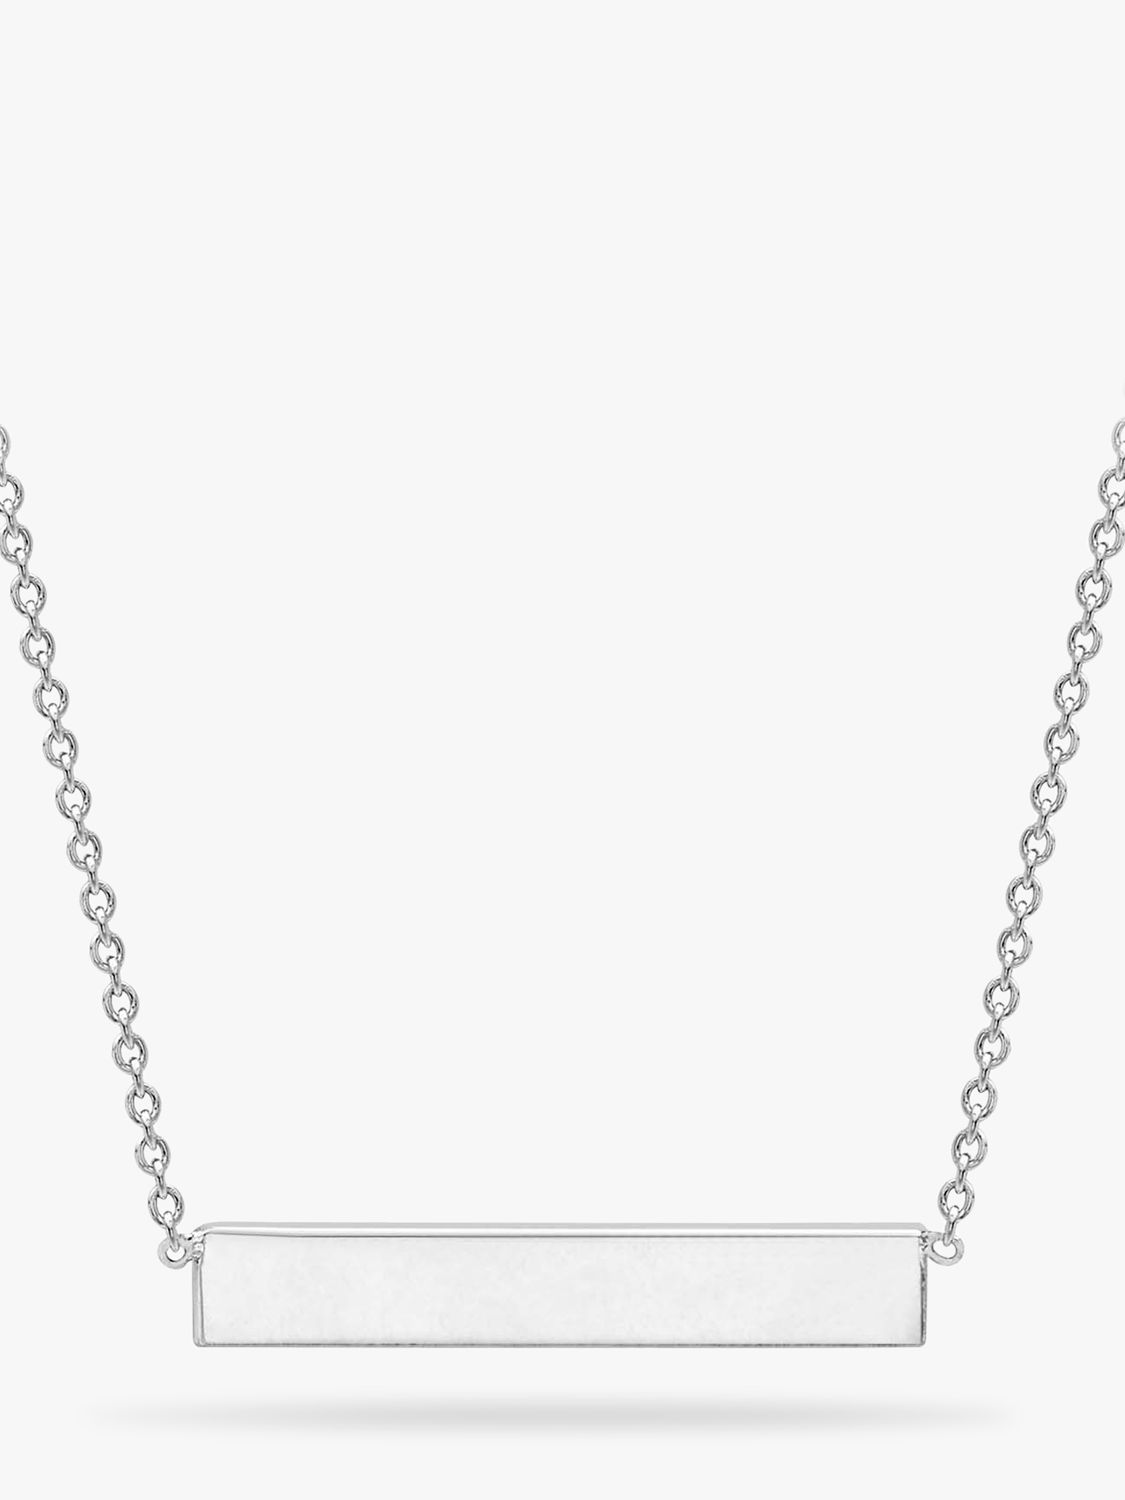 IBB IBB Personalised Small Horizontal Bar Initial Pendant Necklace, Silver